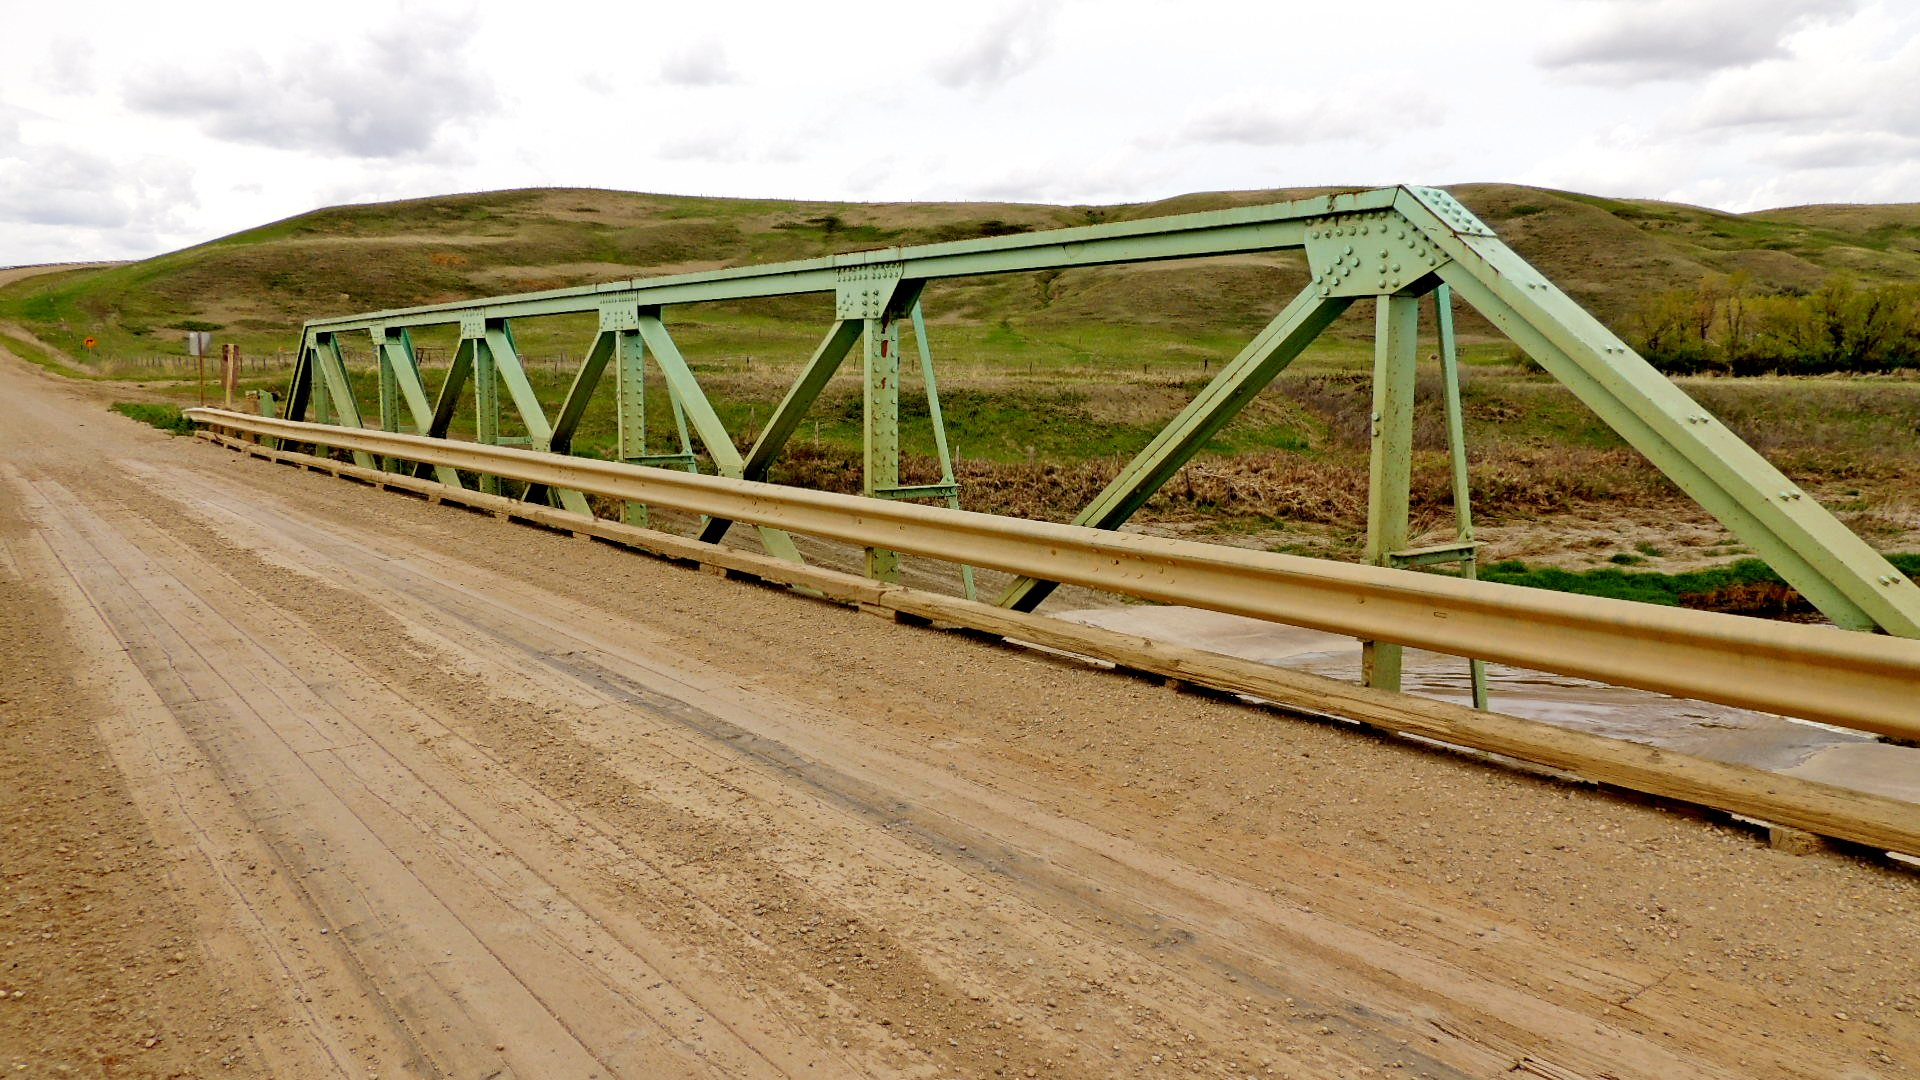 Range Road 224A Truss Bridge